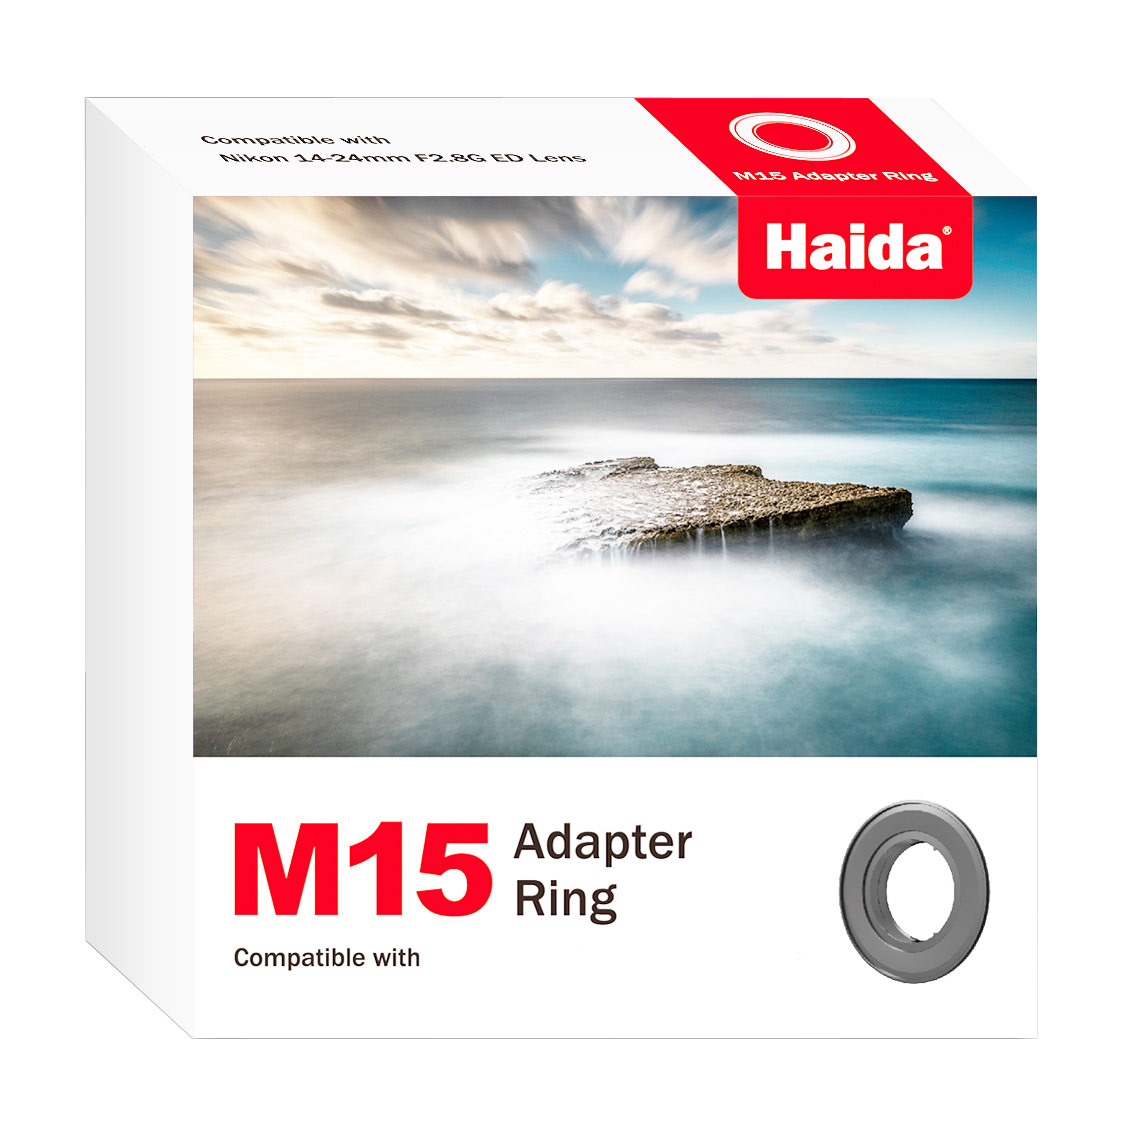 Haida M15 Adapter Ring for Nikon PC 19mm F/4E ED Tilt-Shift Lens